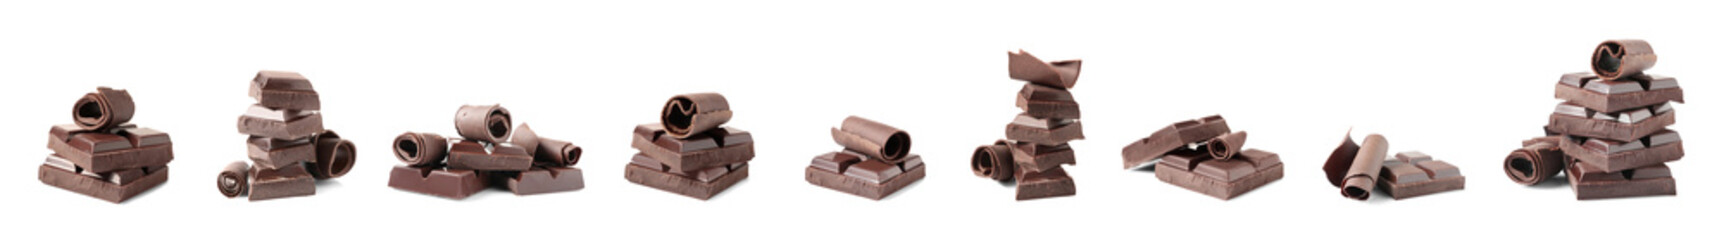 Set of delicious chocolate pieces and curls on white background